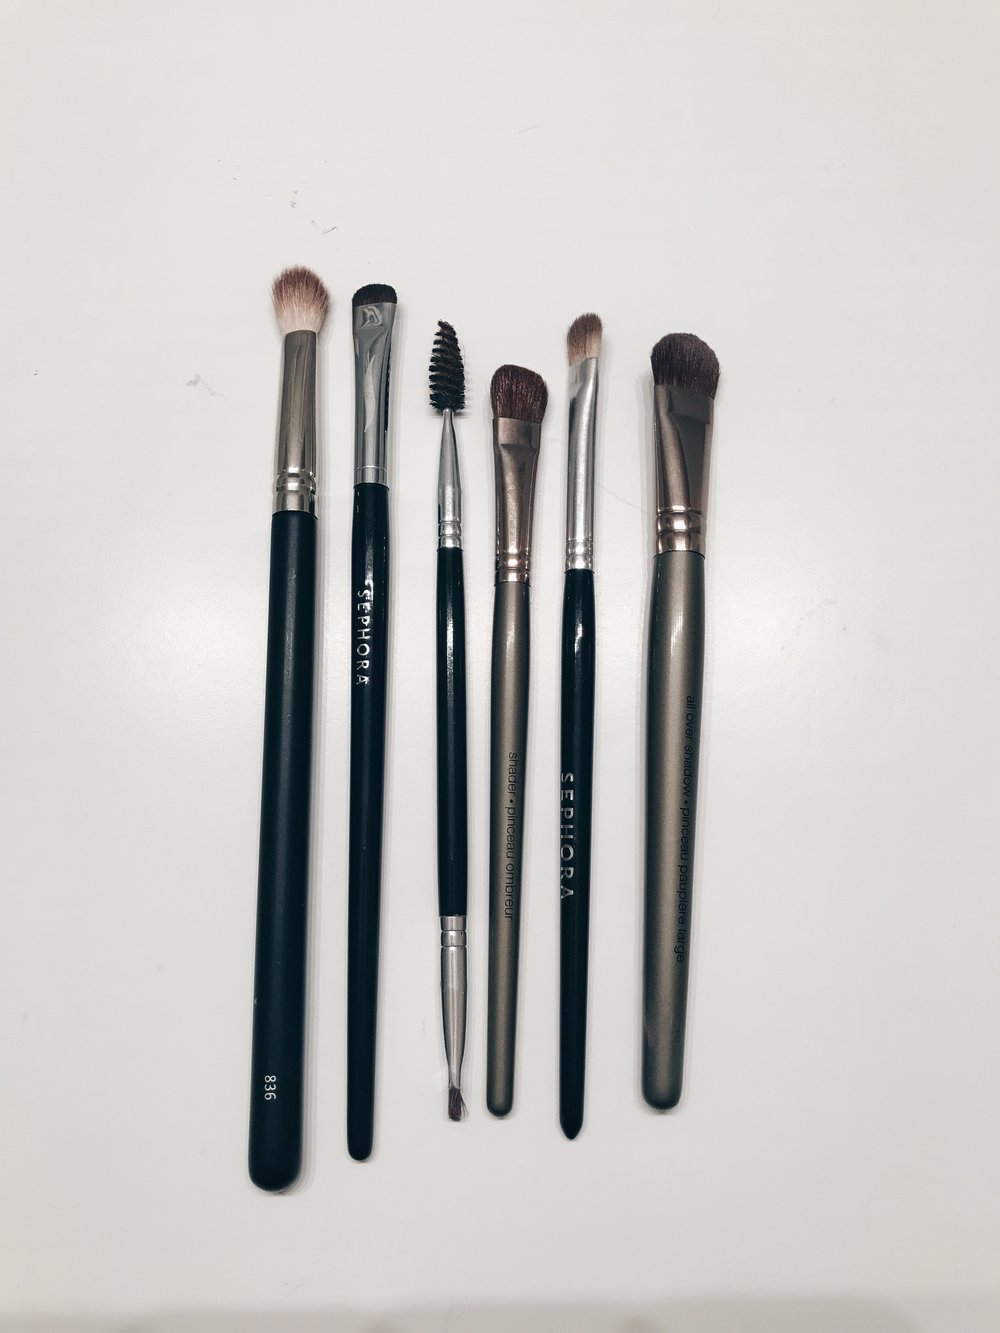 How I use each brush from right to left. Brush 1: Japonesque 836 I use this for the darkest color in my shadow routine. This is used in the corner and blended into the crease.  Brush 2: Smudge Brush I use this brush to smudge a darker color under my lower lash line for that extra smokey effect.  Brush 3: Anastasia Brush #12 This brush is perfect for filling in my brows. I can brush them and use the angle to fill them in beautifully.  Brush 4: Shader Brush Generally, I use this brush second in my routine. I use it to blend a color in my crease and for a color on my lid.  Brush 5: Precision Shadow Brush This brush I use if I want a concentrated color and usually I will wet it with setting spray. I use it for color on my lid only.  Brush 6: All Over Shadow Brush This is normally the first brush I use for all over shadow. I use this for the lightest color to put on my entire lid or just to highlight under my brow.  *I actually have this brush set and love it!